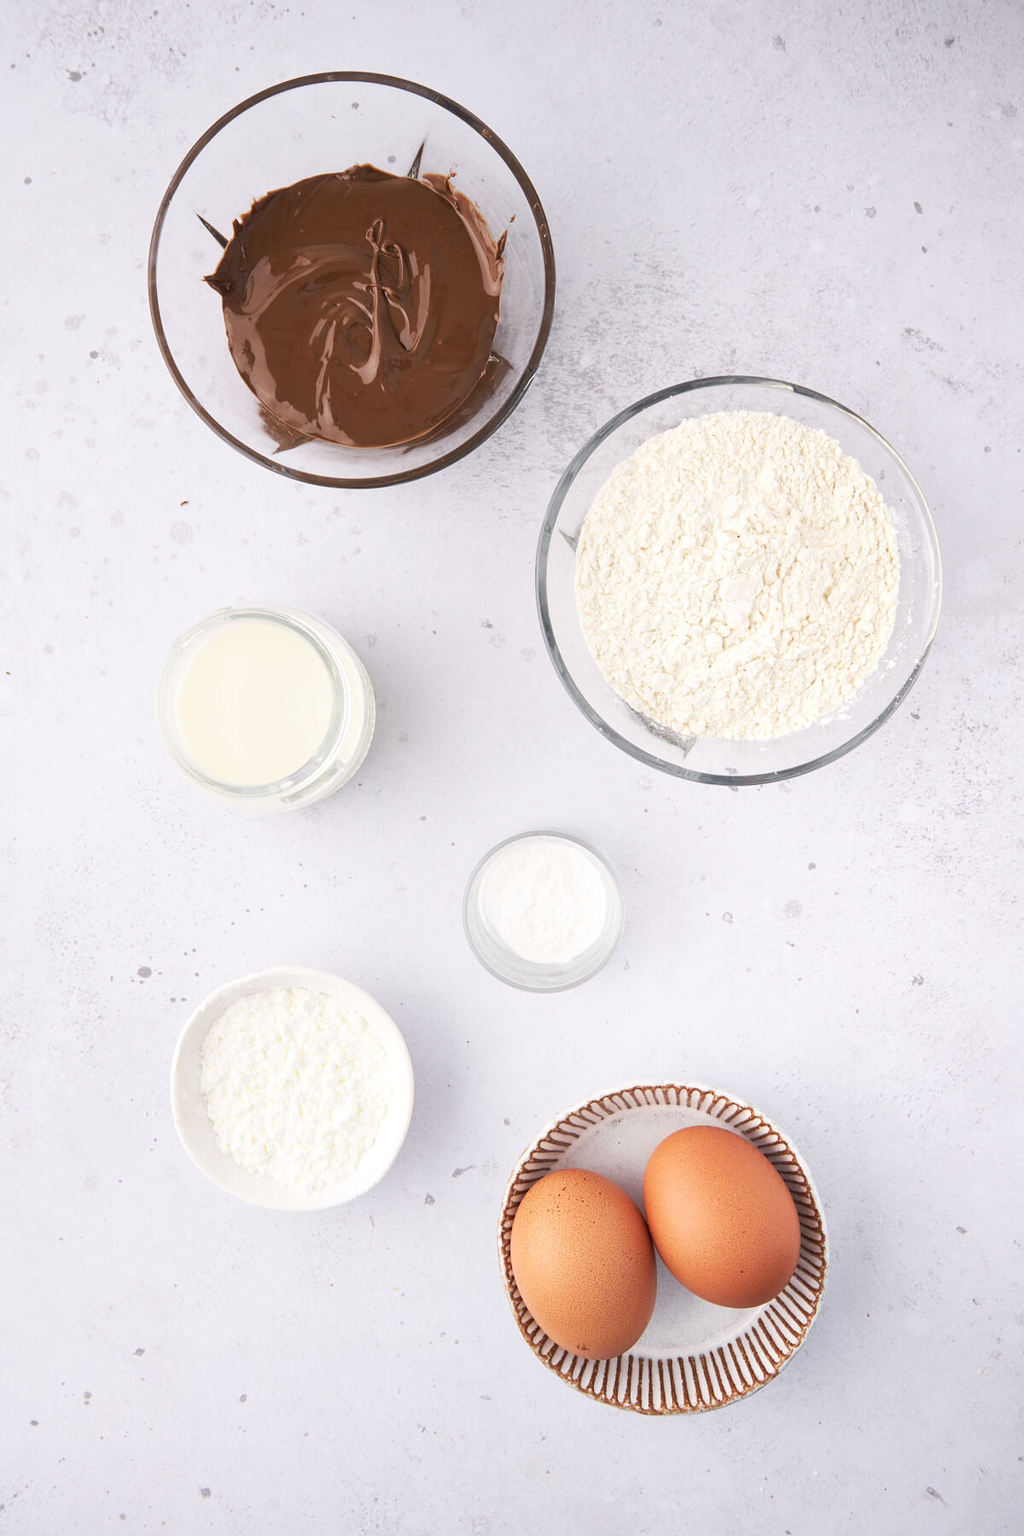 Ingredients needed to make Chocolate Baked donuts.